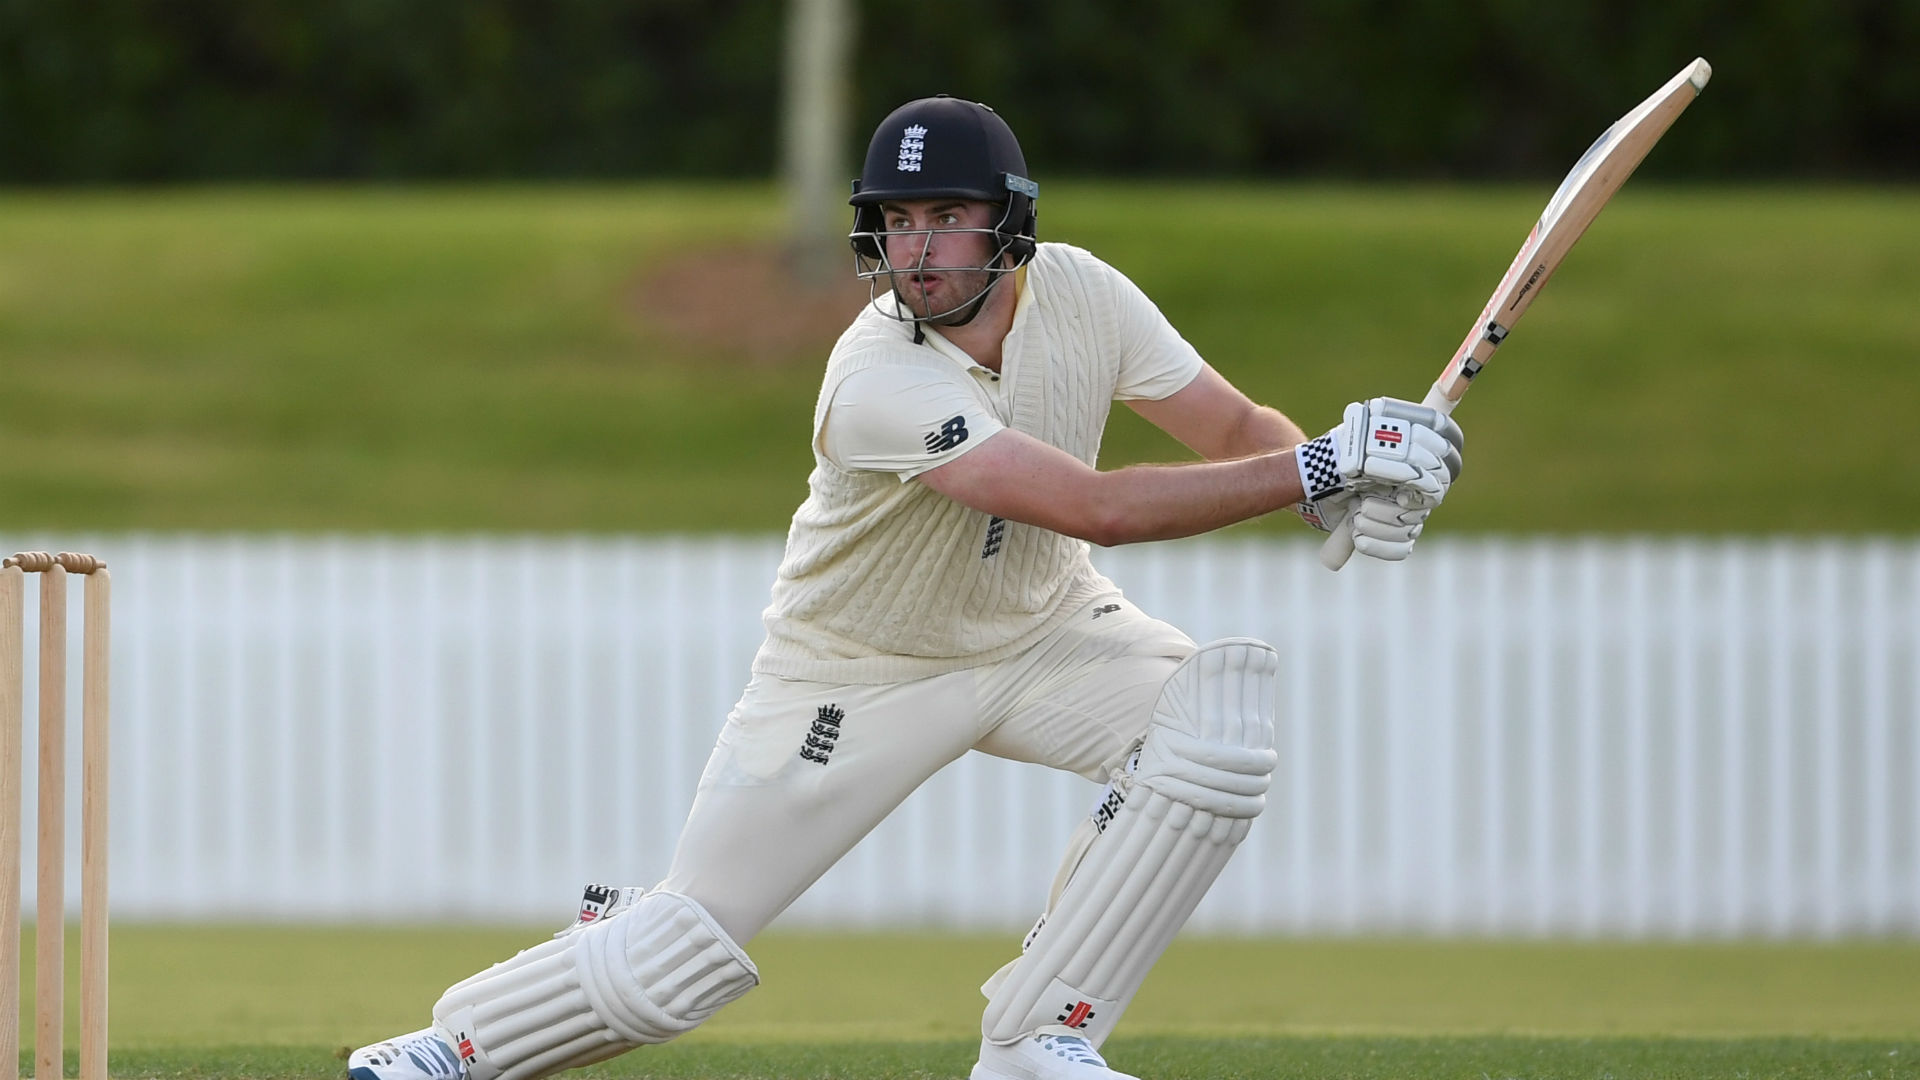 England face New Zealand in a two-match Test series and Dom Sibley will get a chance to impress on the international stage.